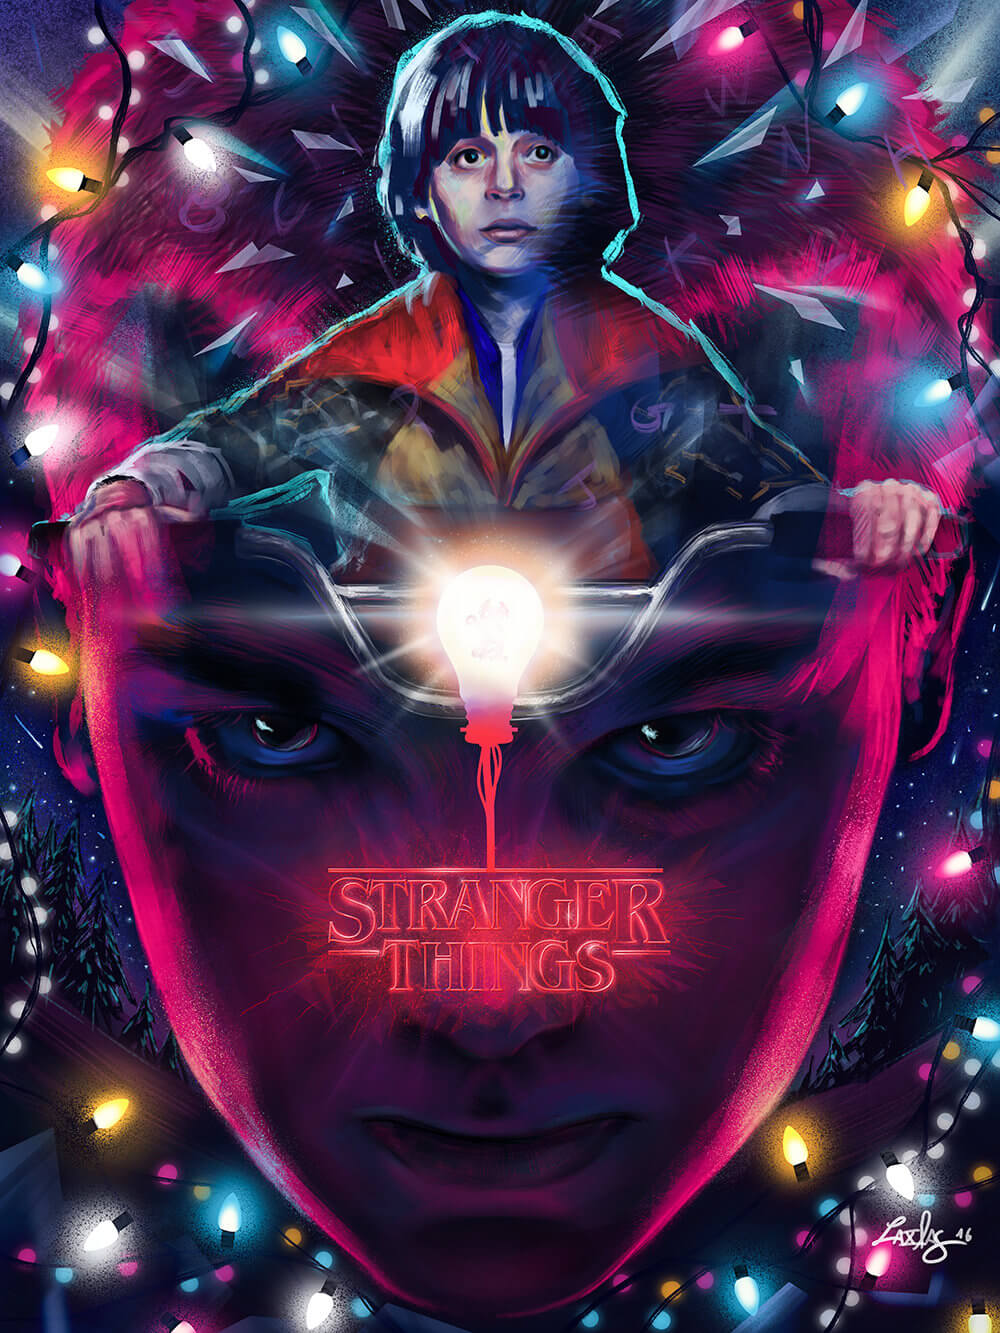 Stranger-Things-Alternative-poster-paintingHD-WEB.jpg